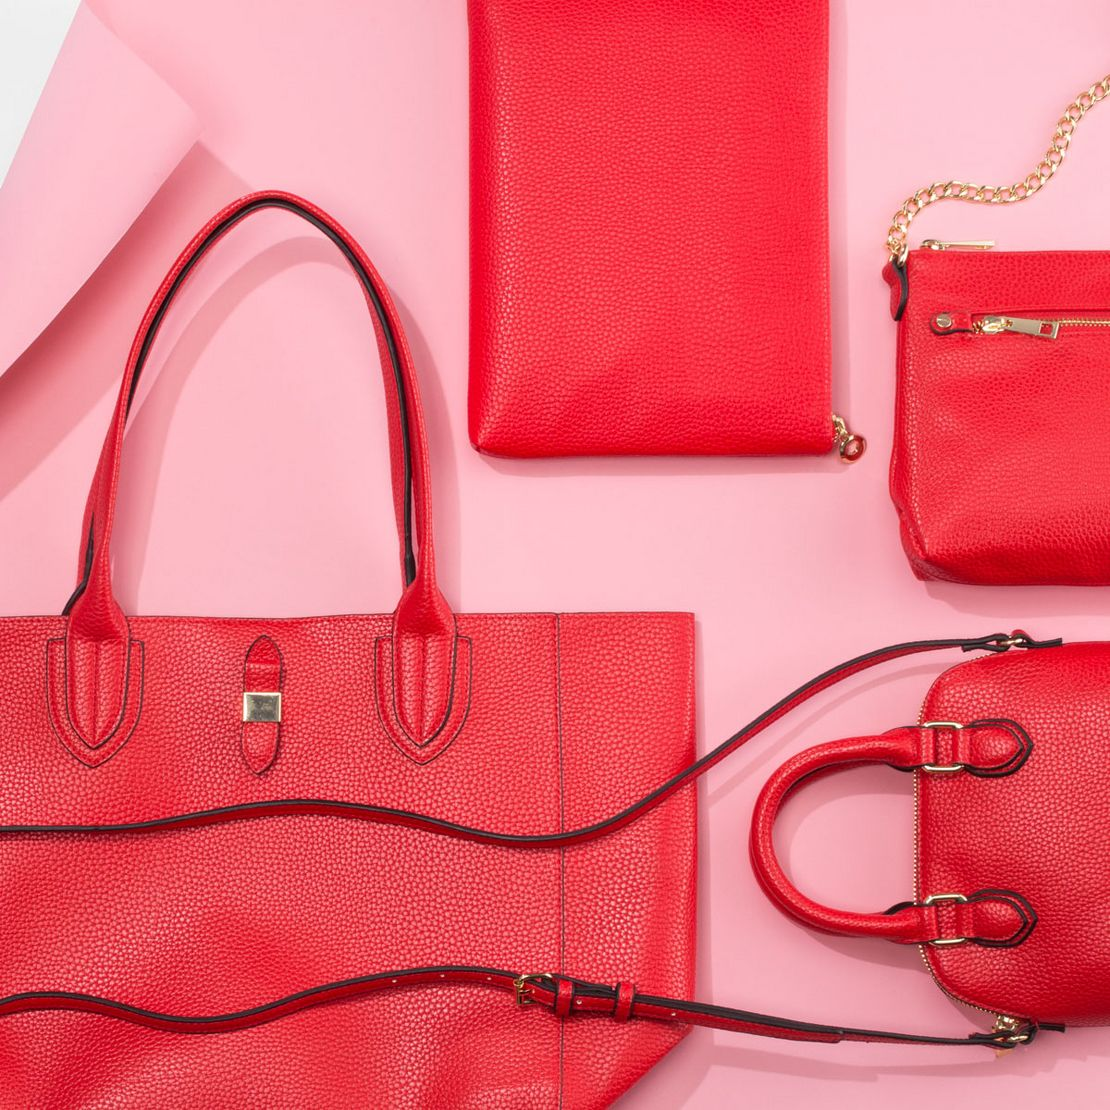 Large tote bags at target - Pop In The Shades Of The Season Red Handbags